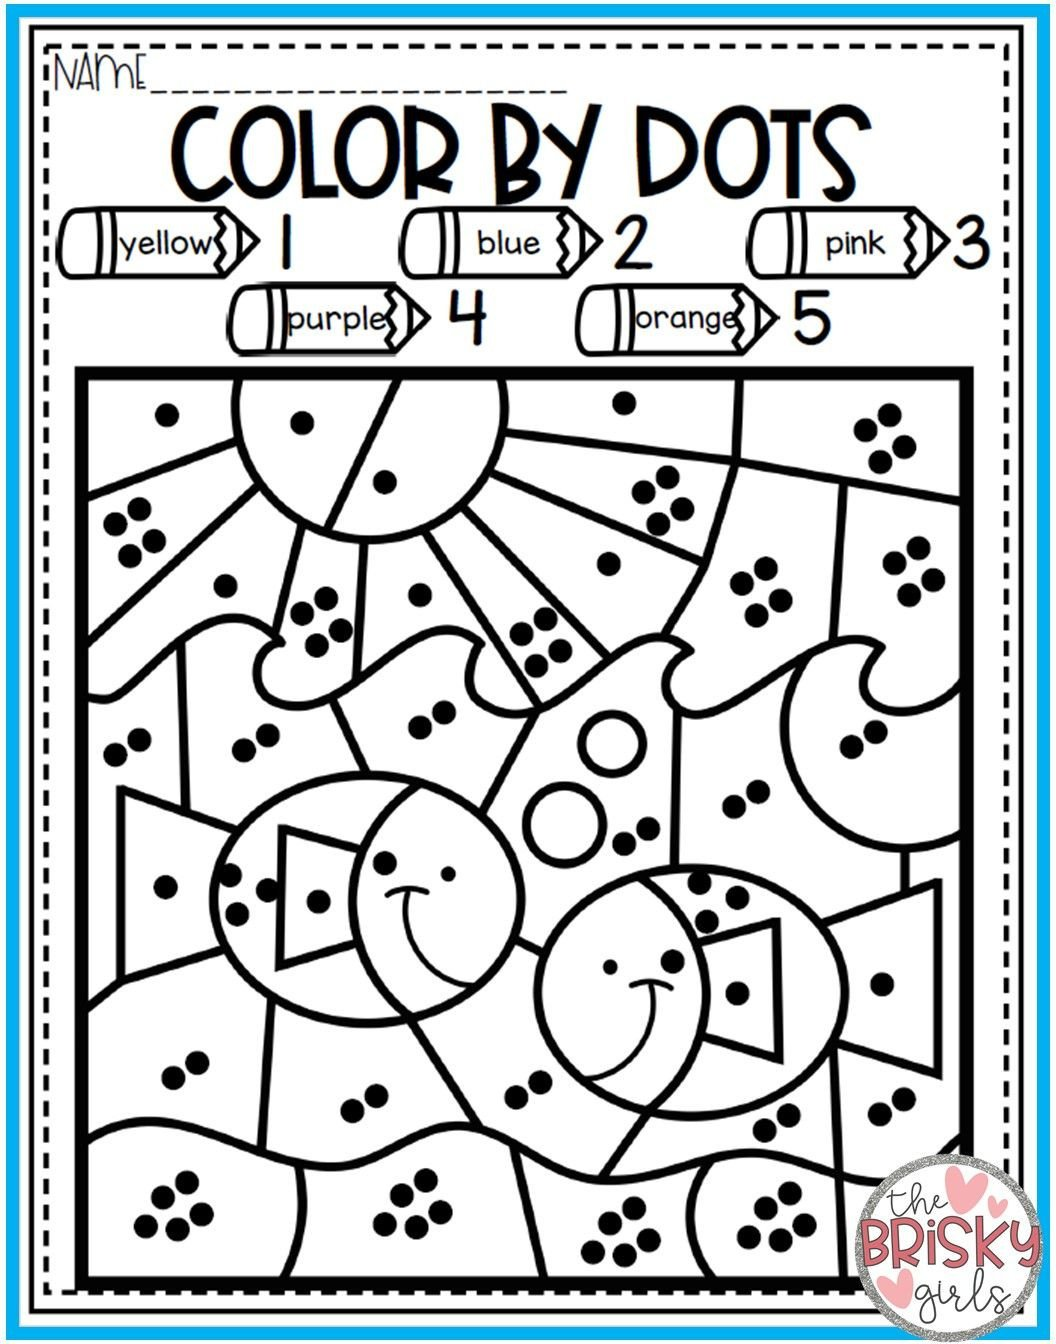 Capacity Worksheets Kindergarten Pin by the Brisky Girls On Math Activities In 2020